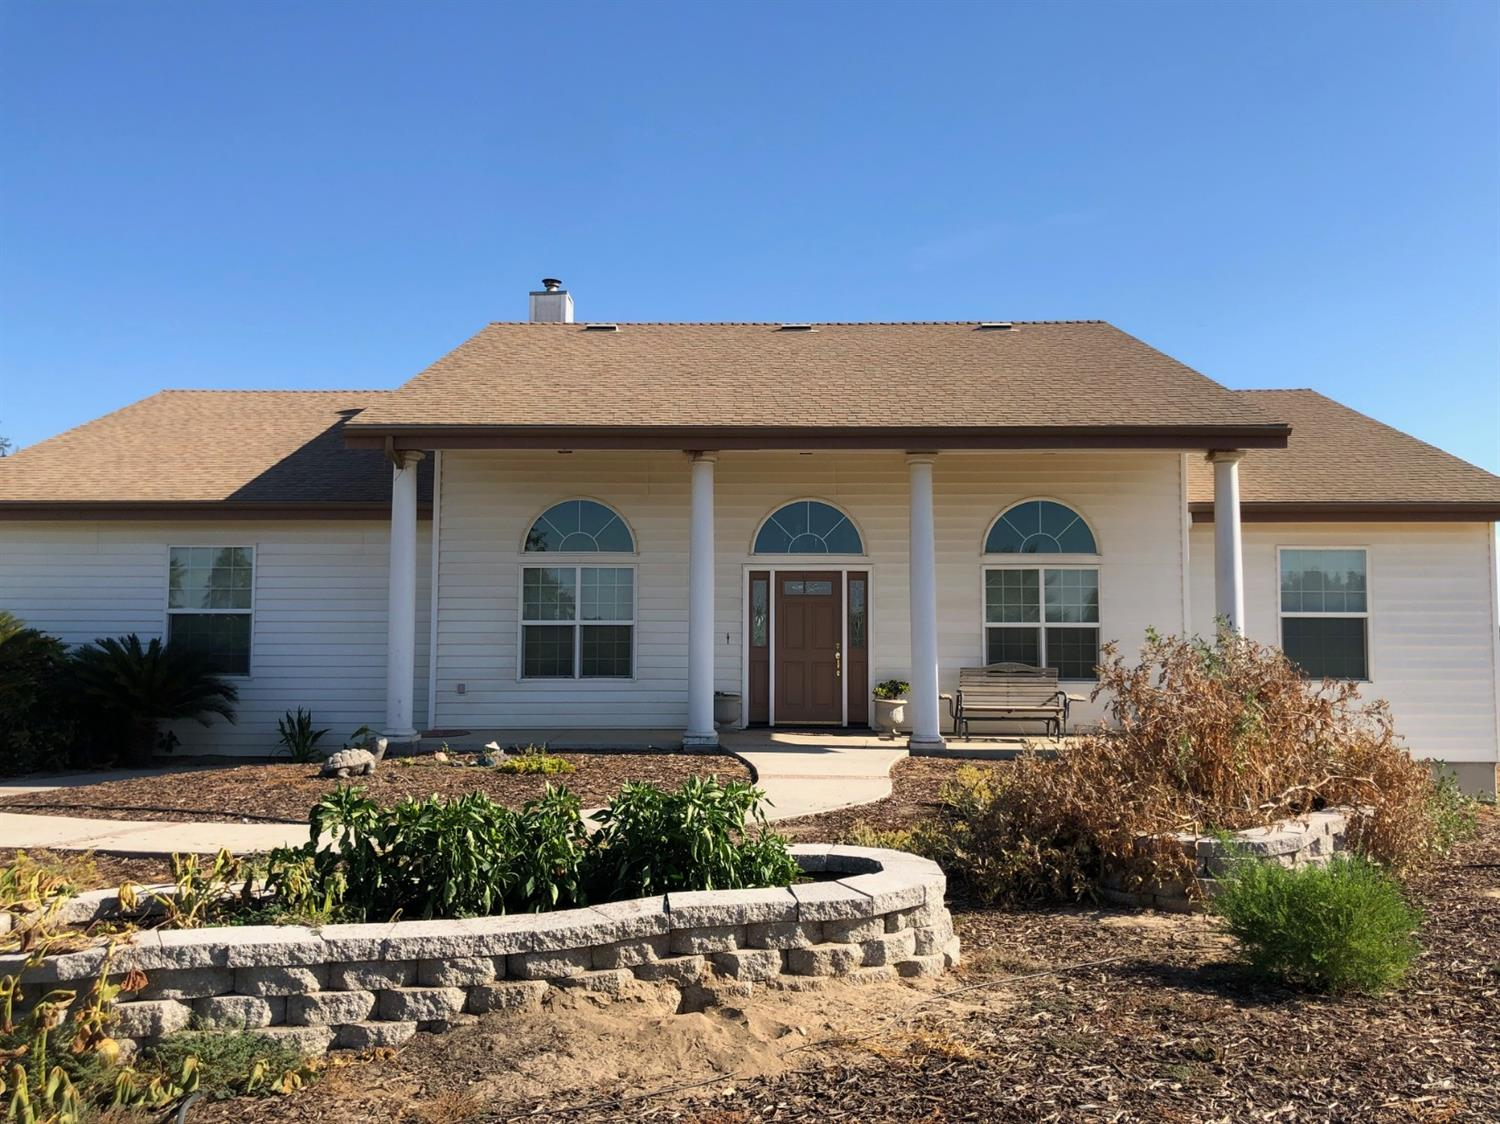 Enjoy a carefree lifestyle on this 40 acre ranch that includes a stunning home.  This is country living at it's best.  The 3,764 square foot home has 3 bedrooms, an office, a formal dining room, a bunk room and much, much more.  The game/family room is approximately 30' by 27' with huge walk-in storage closet.  The view from the living room and kitchen of the infinity pool and vineyard is breathtaking. Vineyard is Thompson Seedless and is currently leased to a local farmer.  The 2018/19 crop belong to the seller and farmer.